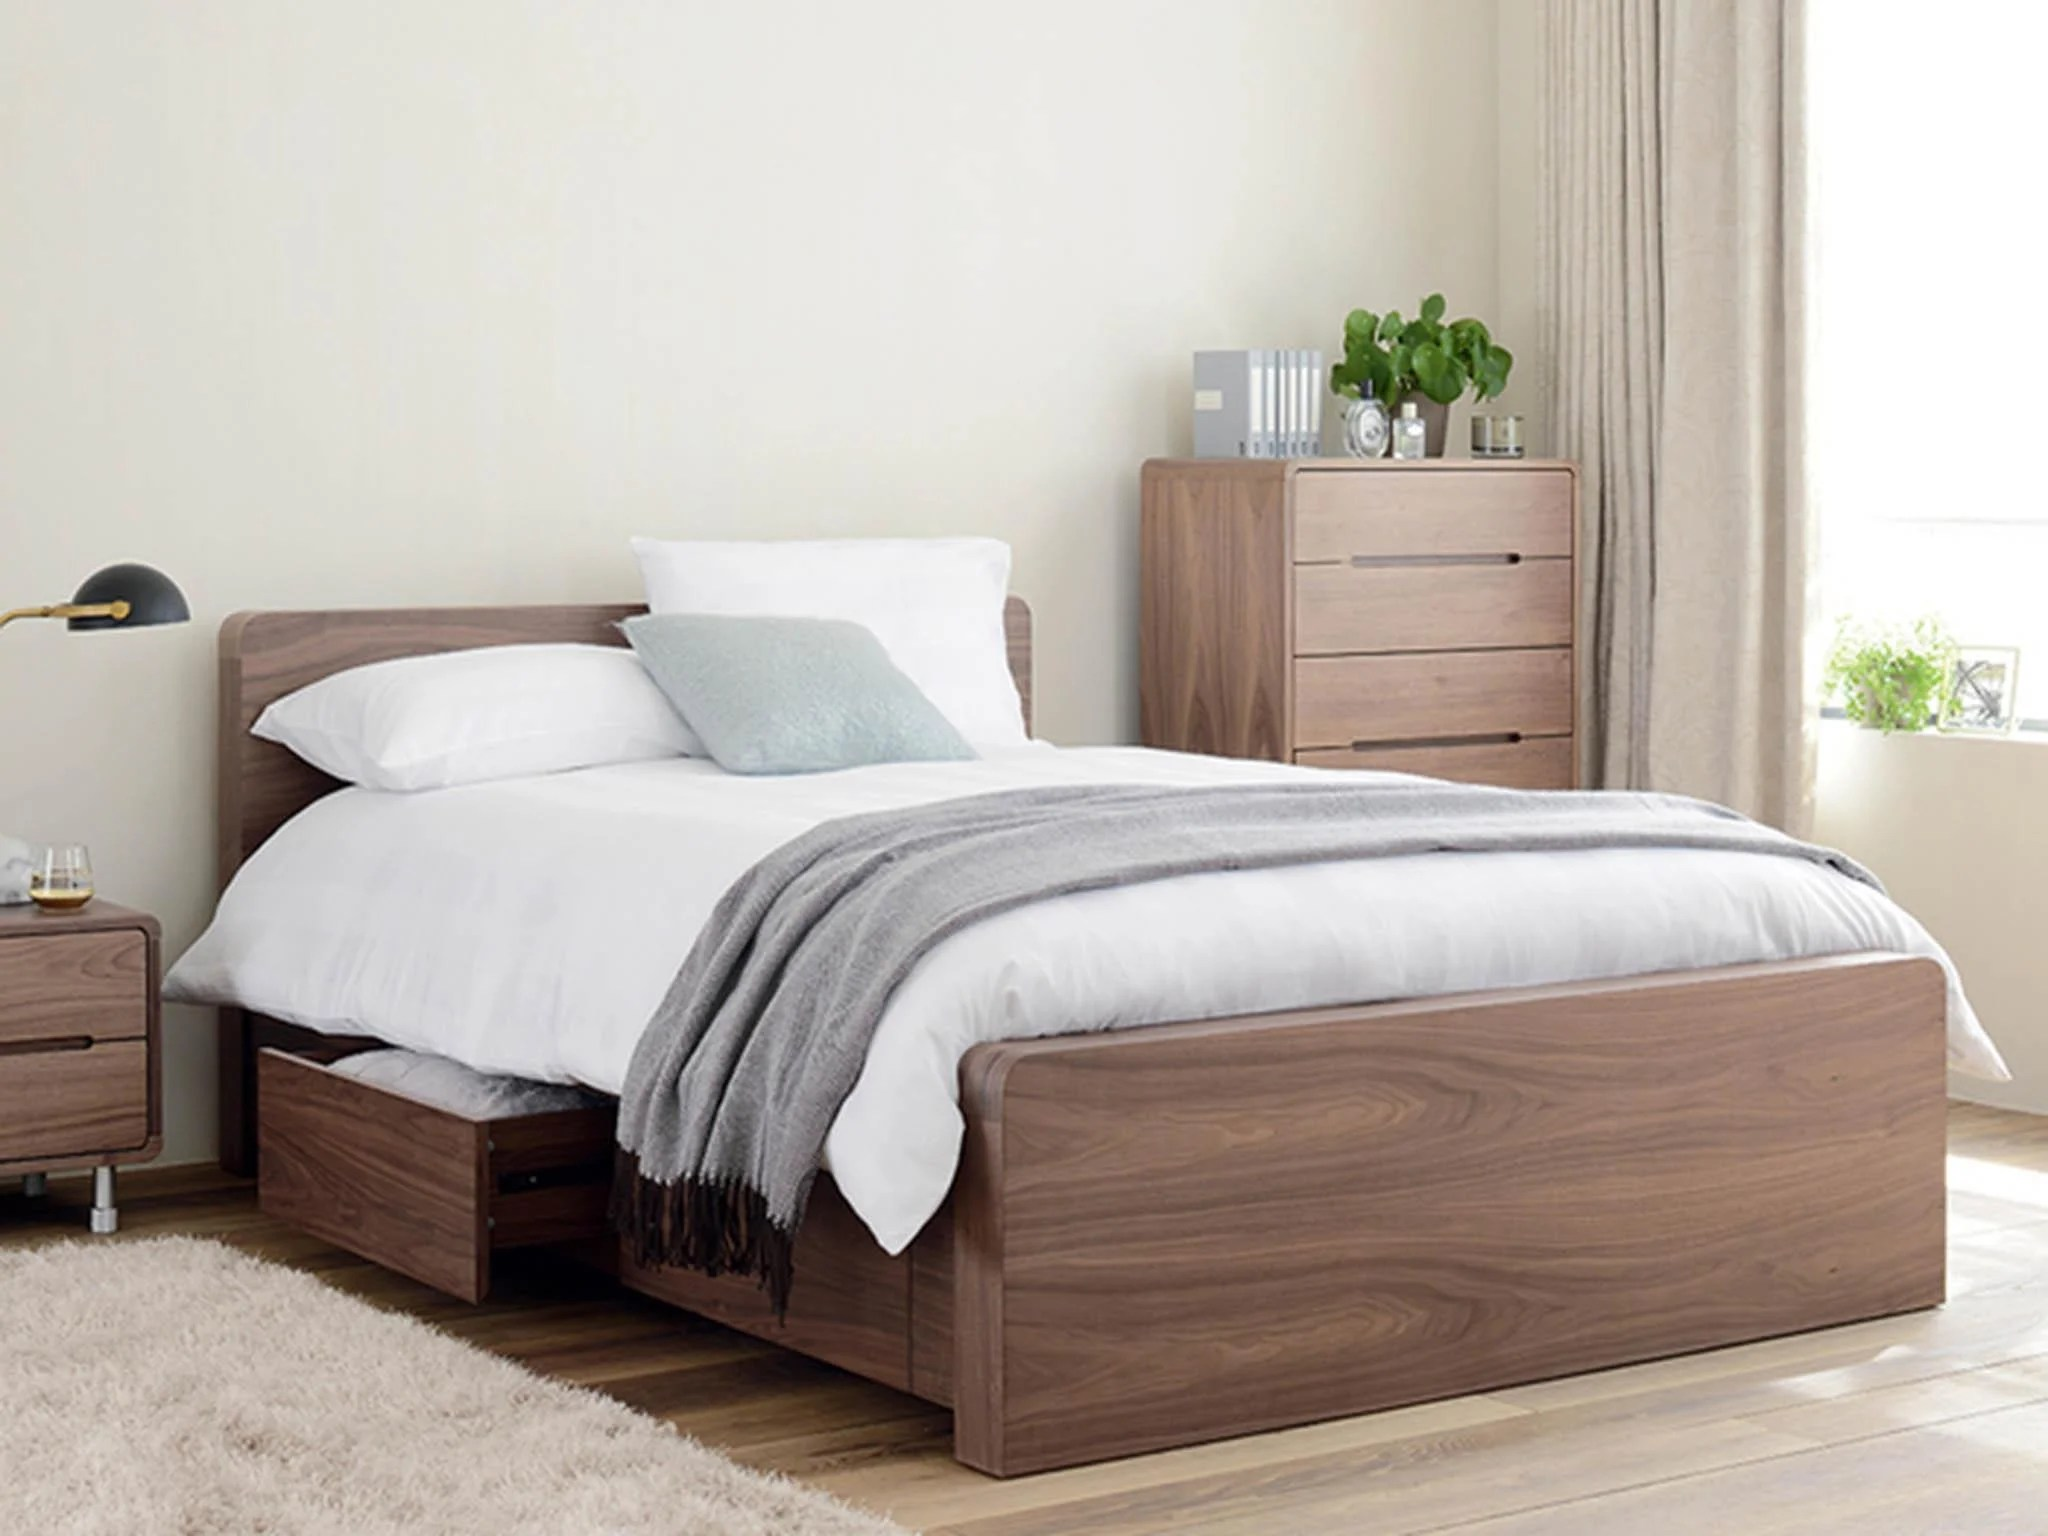 Best Storage Beds That Are Comfy And Practical